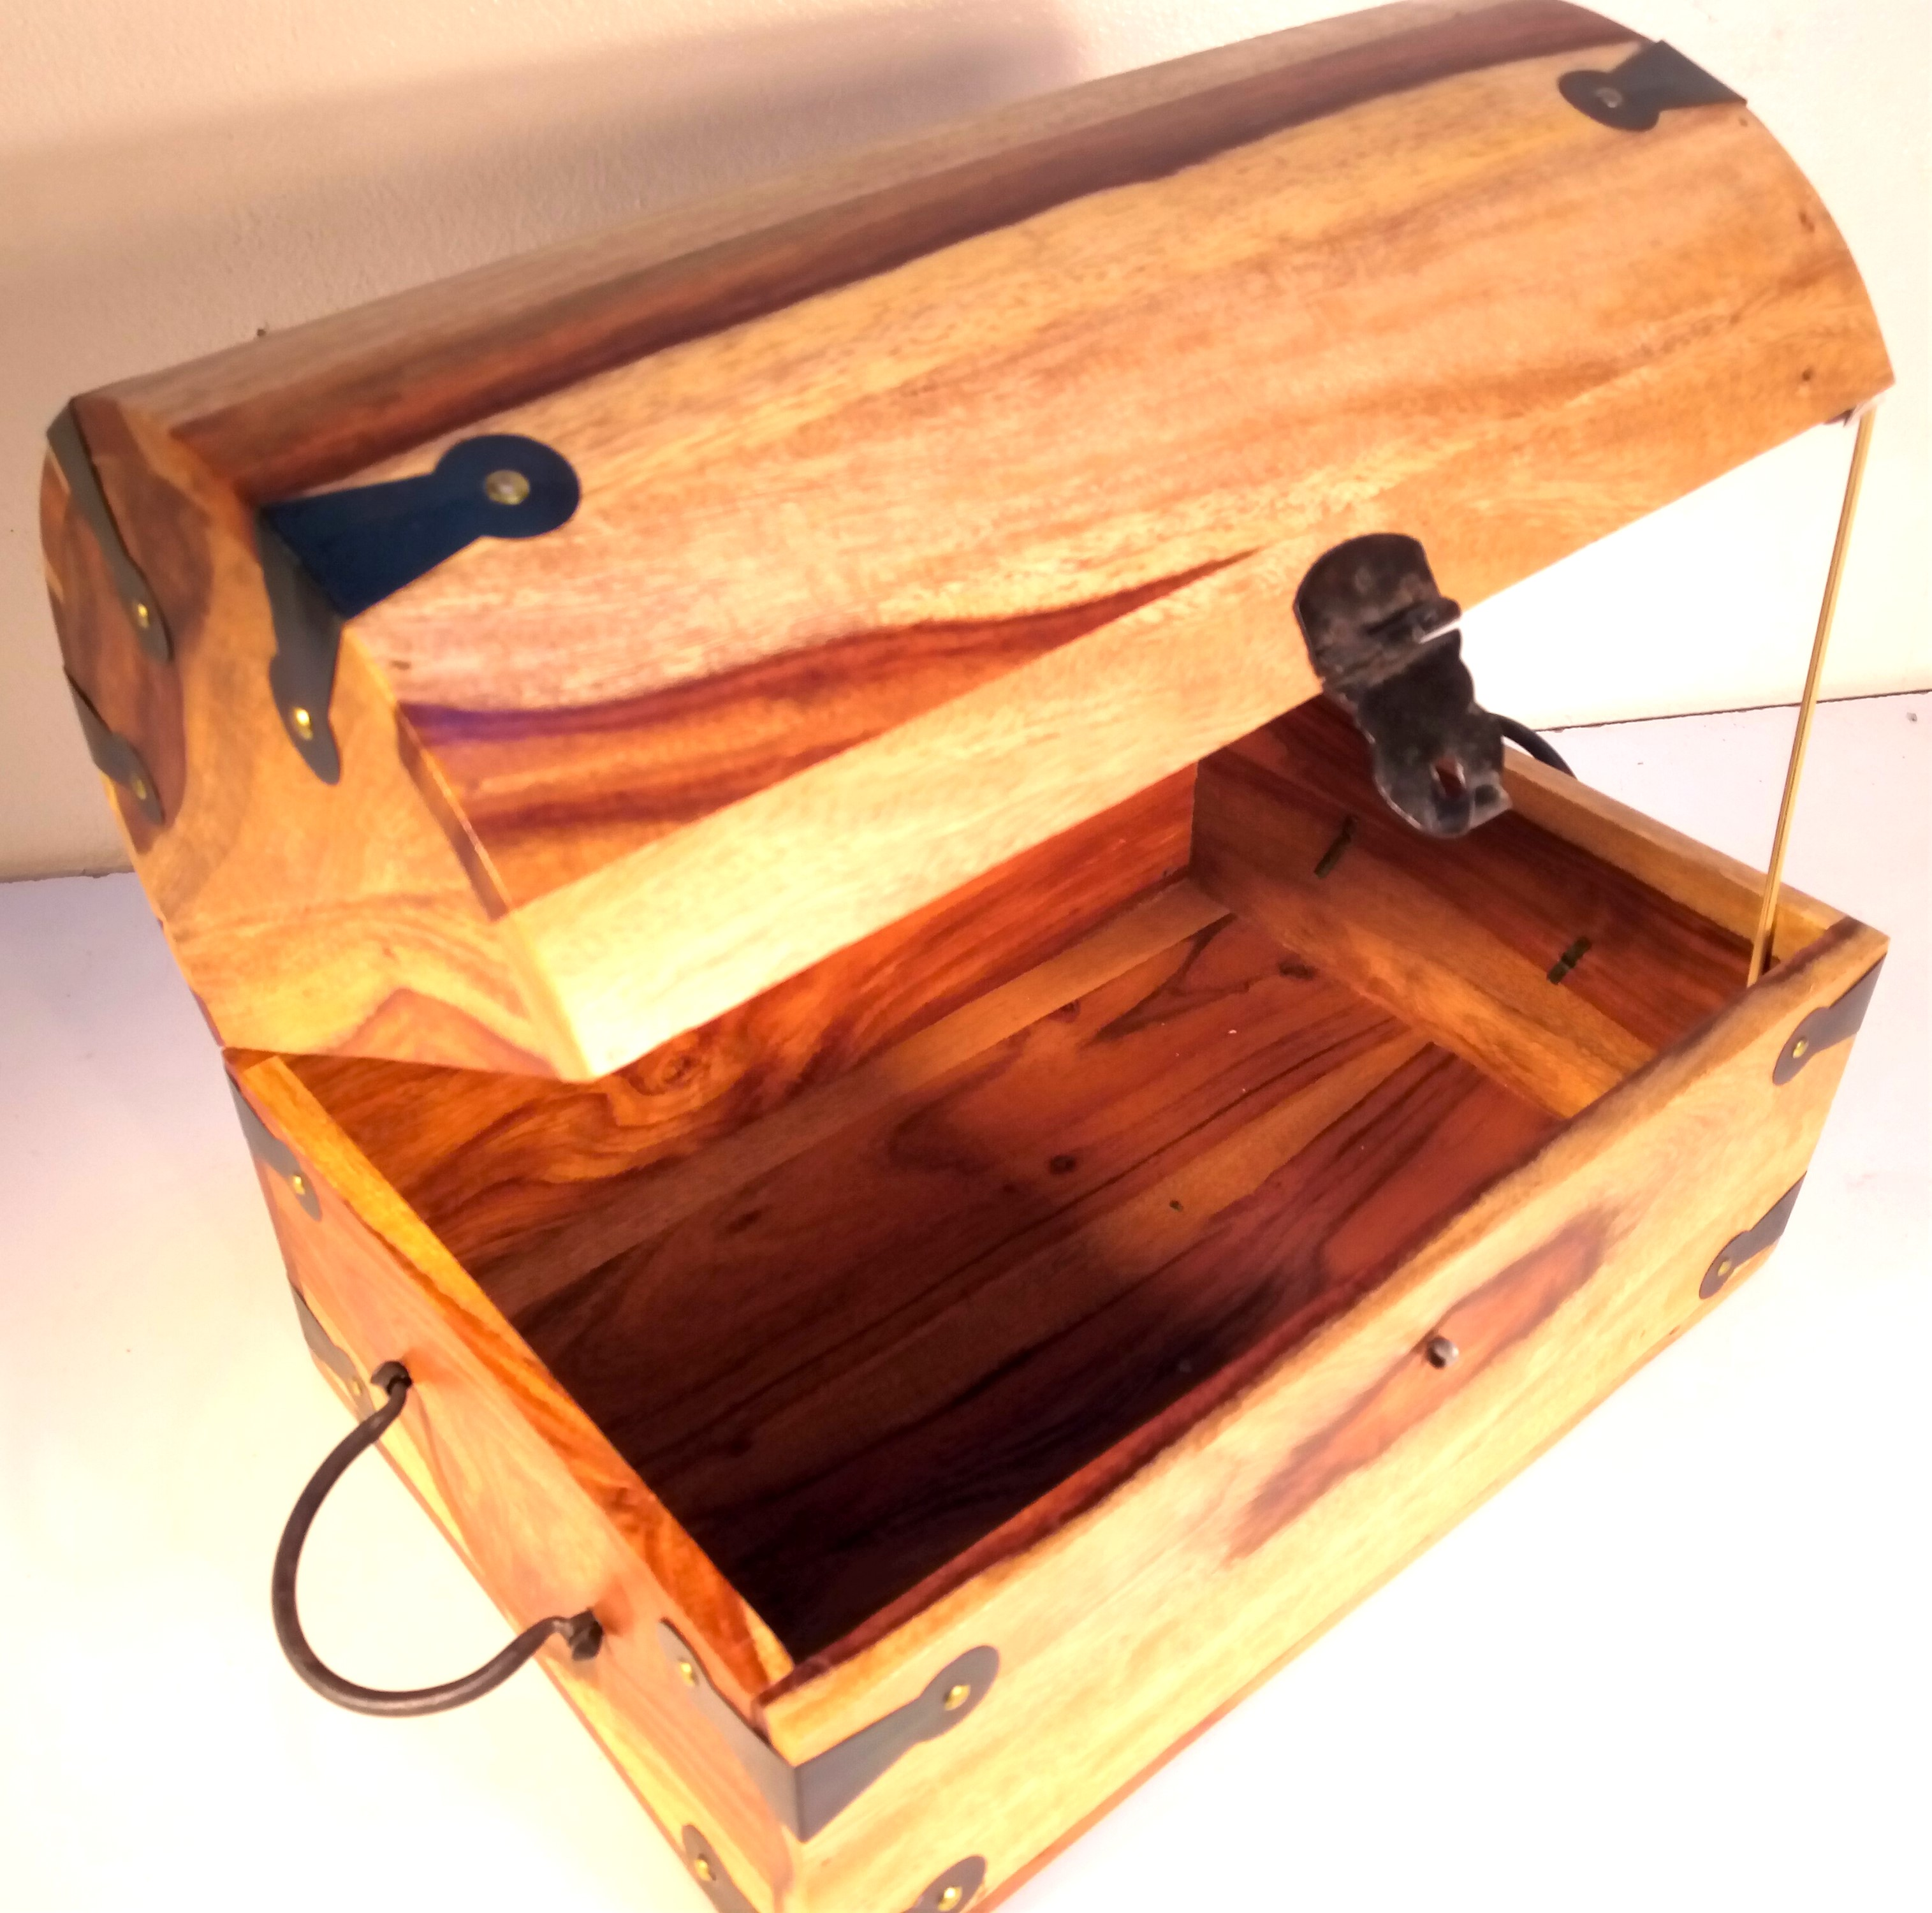 Mango wood 'Treasure Chest' banded with metal and with metal handles and clasp. 36 x 25 x 25cm. New - Image 2 of 2